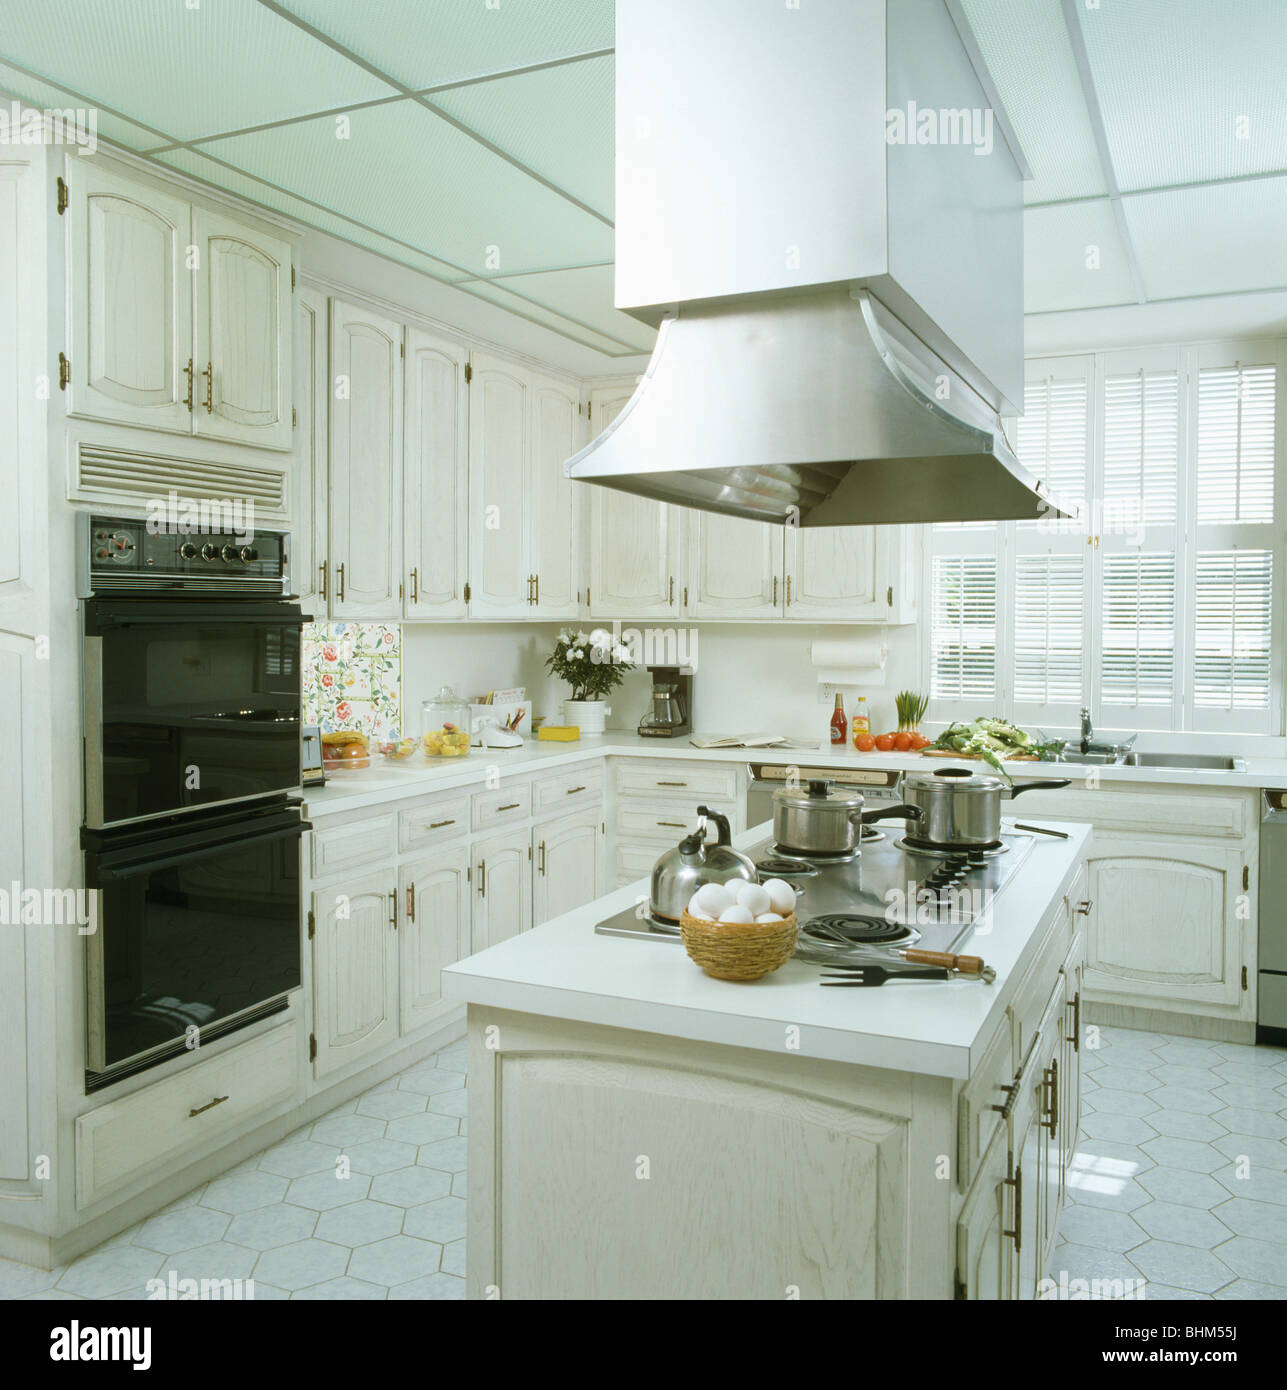 Kitchen Island Designs With Hob: Large Extractor Fan Above Hob In Island Unit In Modern